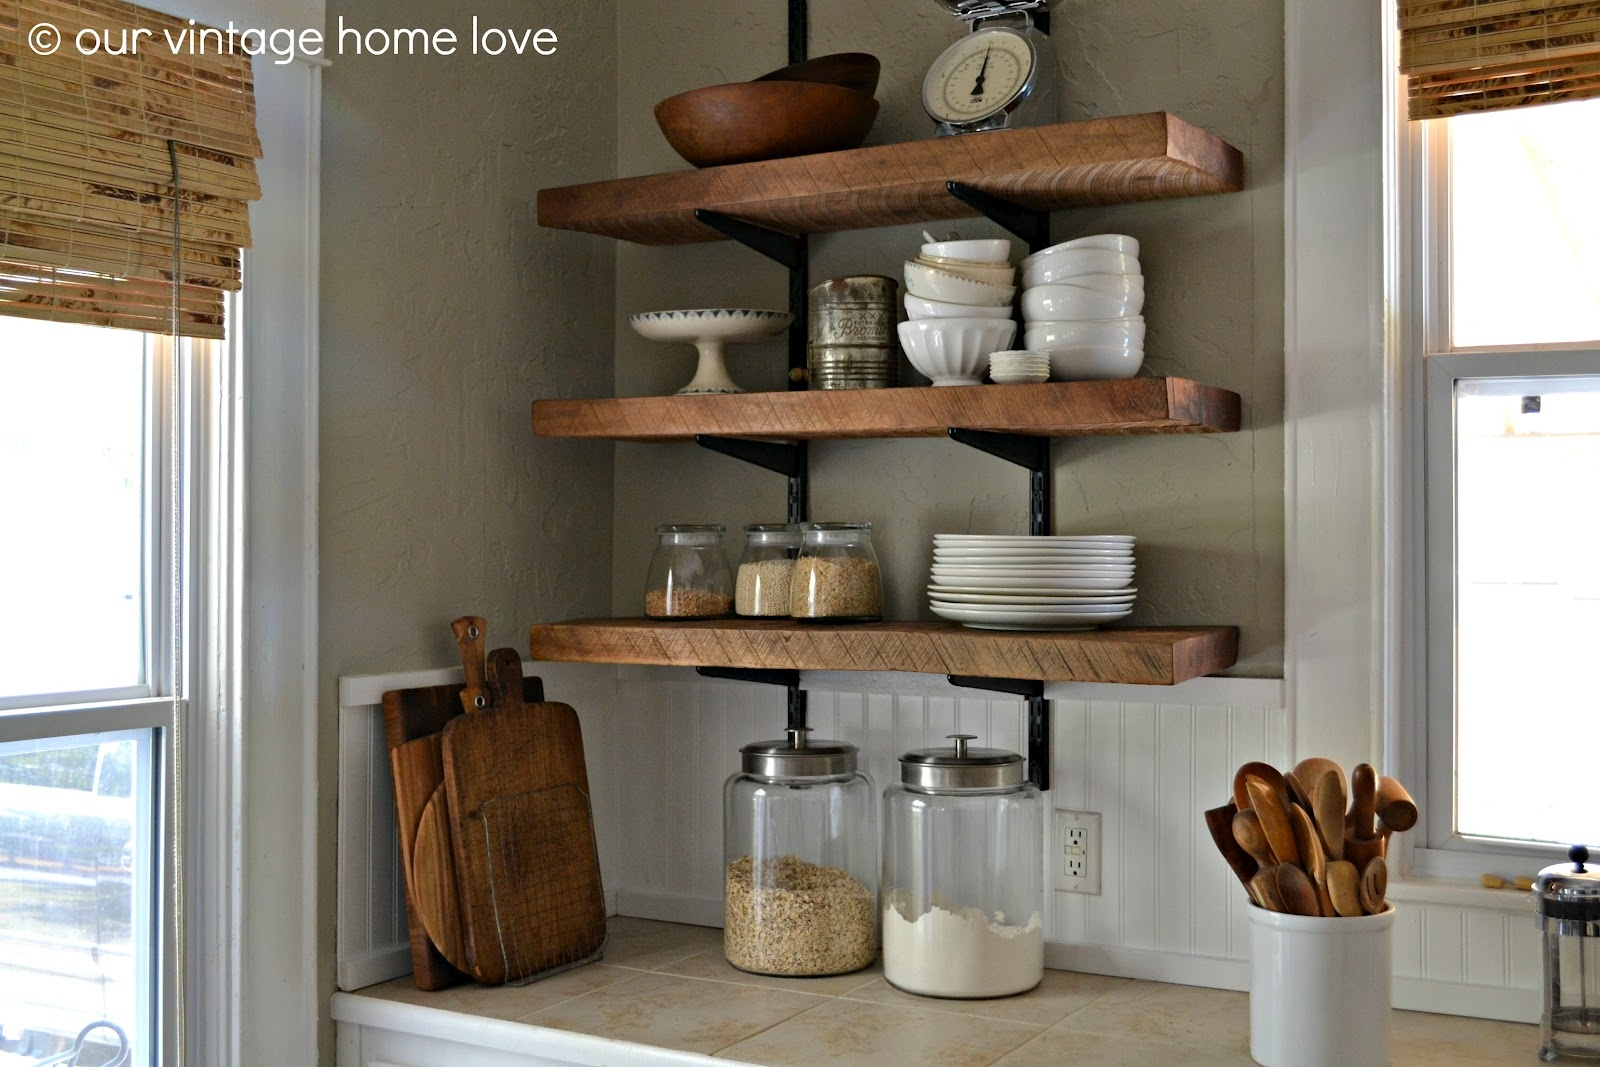 Our Vintage Home Love Reclaimed Wood Kitchen Shelving Reveal Pertaining To Kitchen Shelves (#8 of 12)